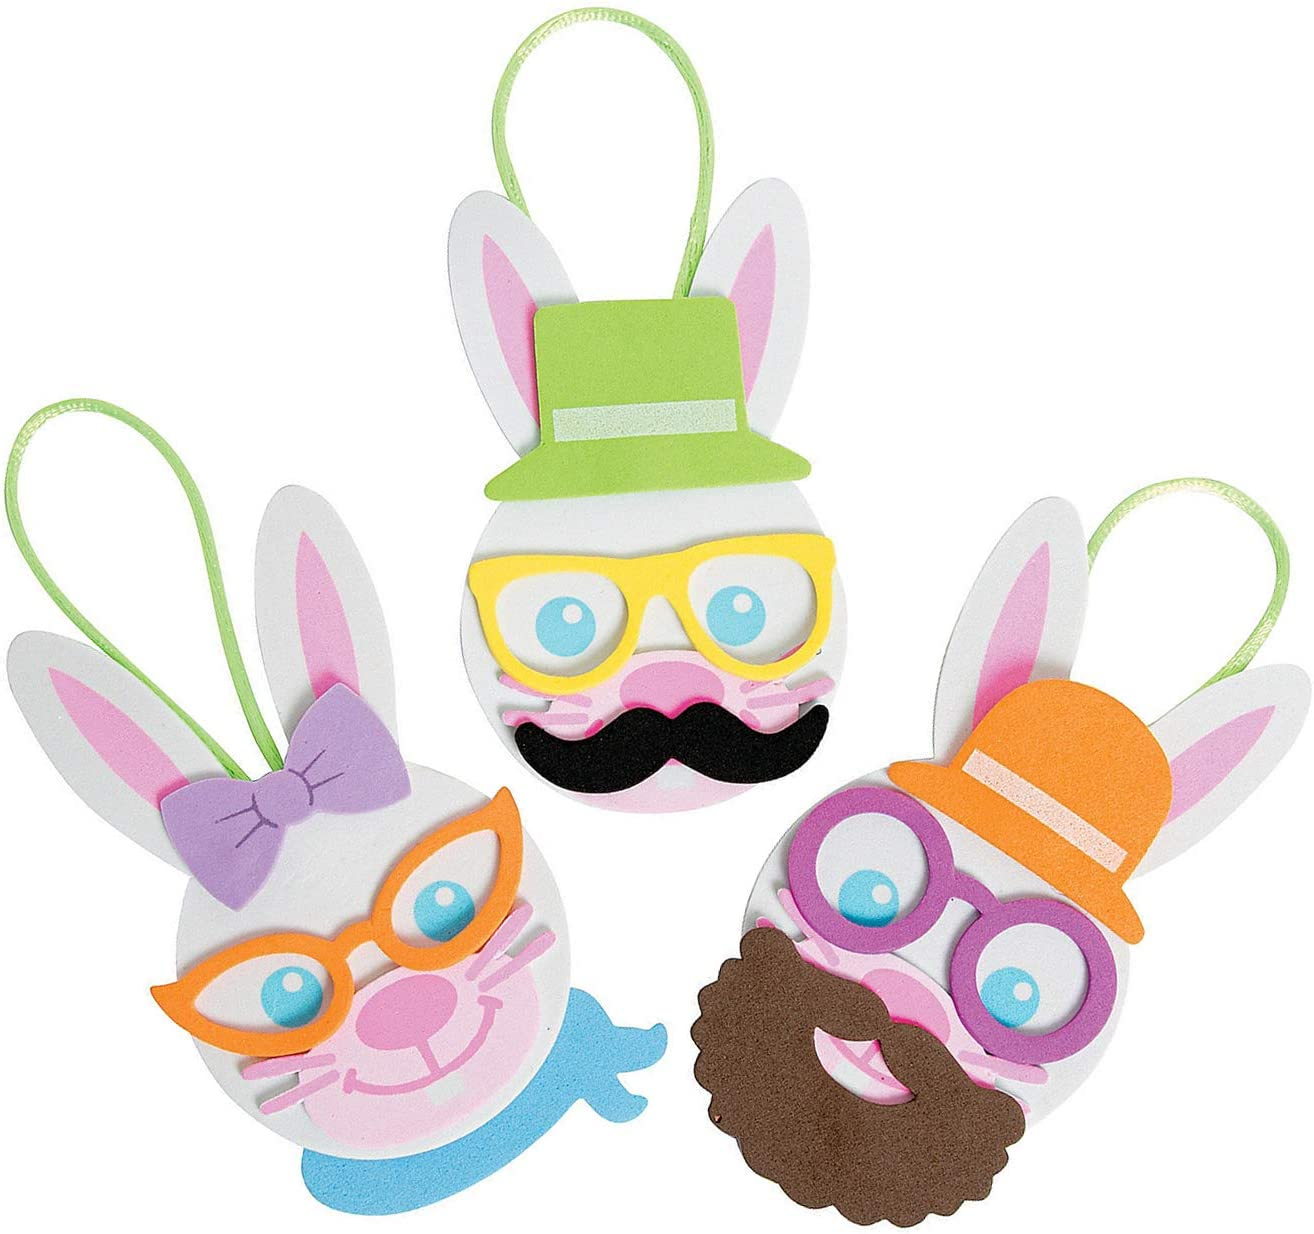 4E's Novelty Easter Craft Kit for Kids Foam Bunny Ornament [12 Pack] Spring Fun Home Activities - Mess Free Arts & Craft Self Adhesive